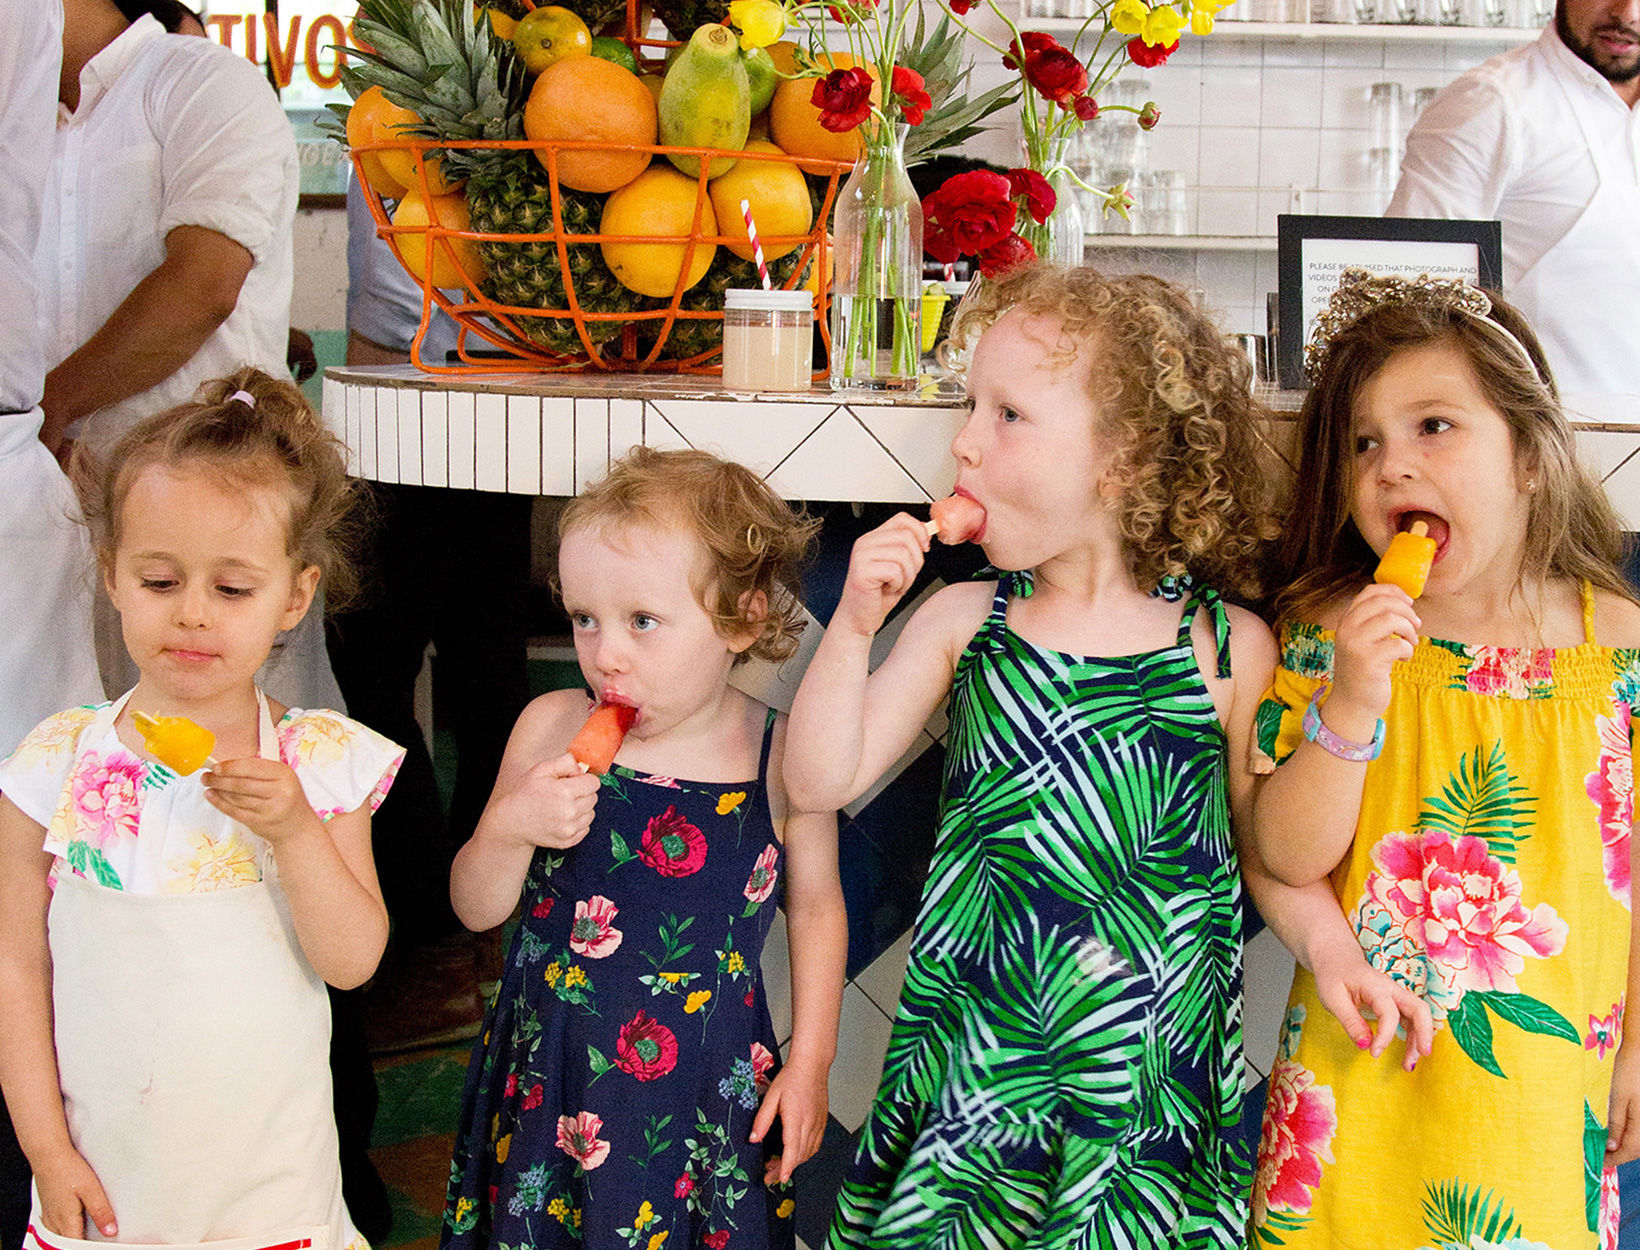 The Ultimate Little-Foodie Playdate